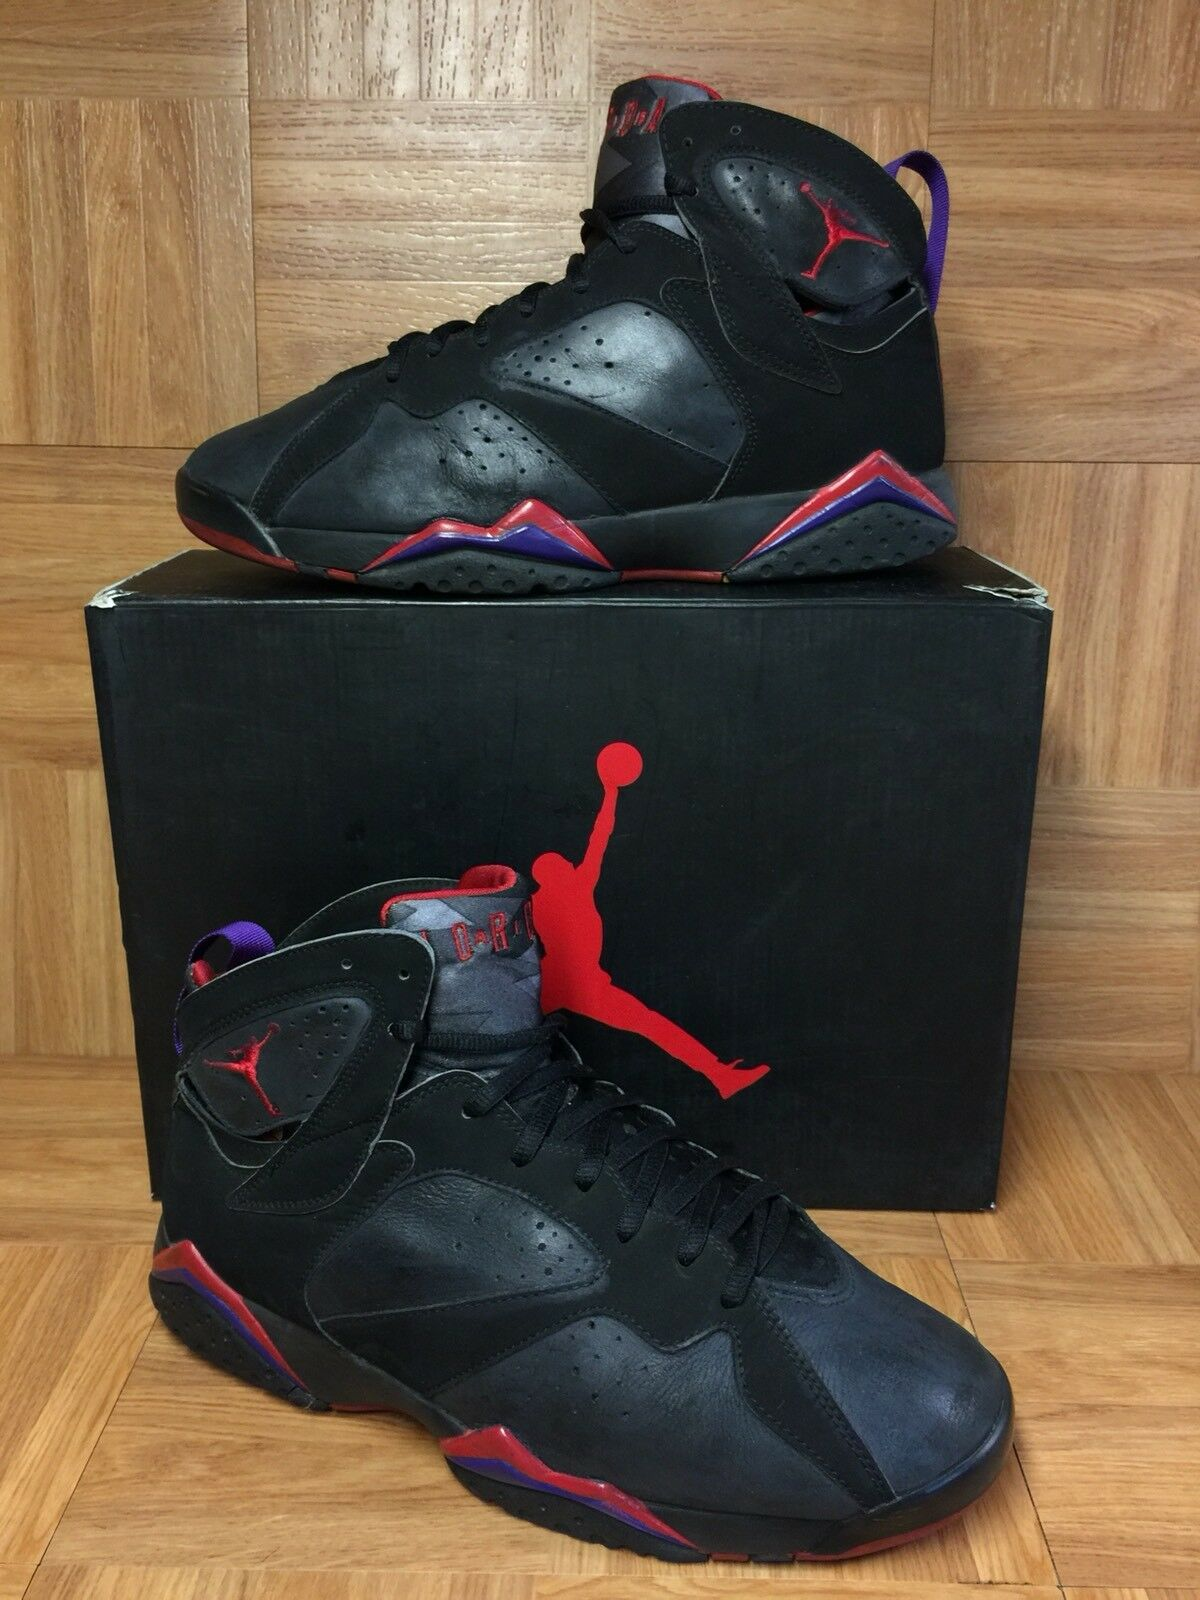 VNTG  Nike Air Jordan VII 7 Retro 2002 Raptor Charcoal True Red S 11 304775-006